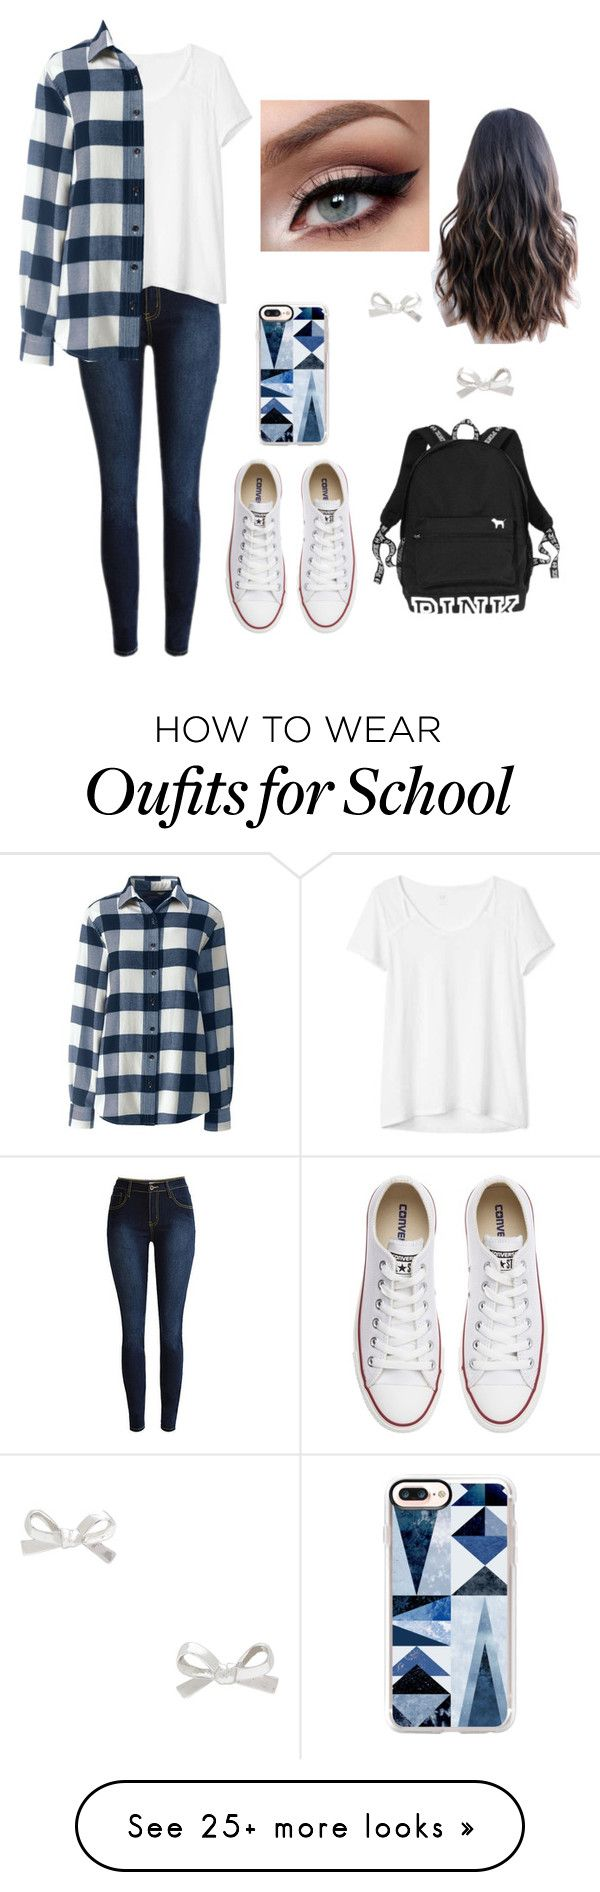 """School outfit"" by pinkj3w3l on Polyvore featuring Gap, Lands' End, Converse, Victoria's Secret, Kate Spade, Casetify and plus size clothing"